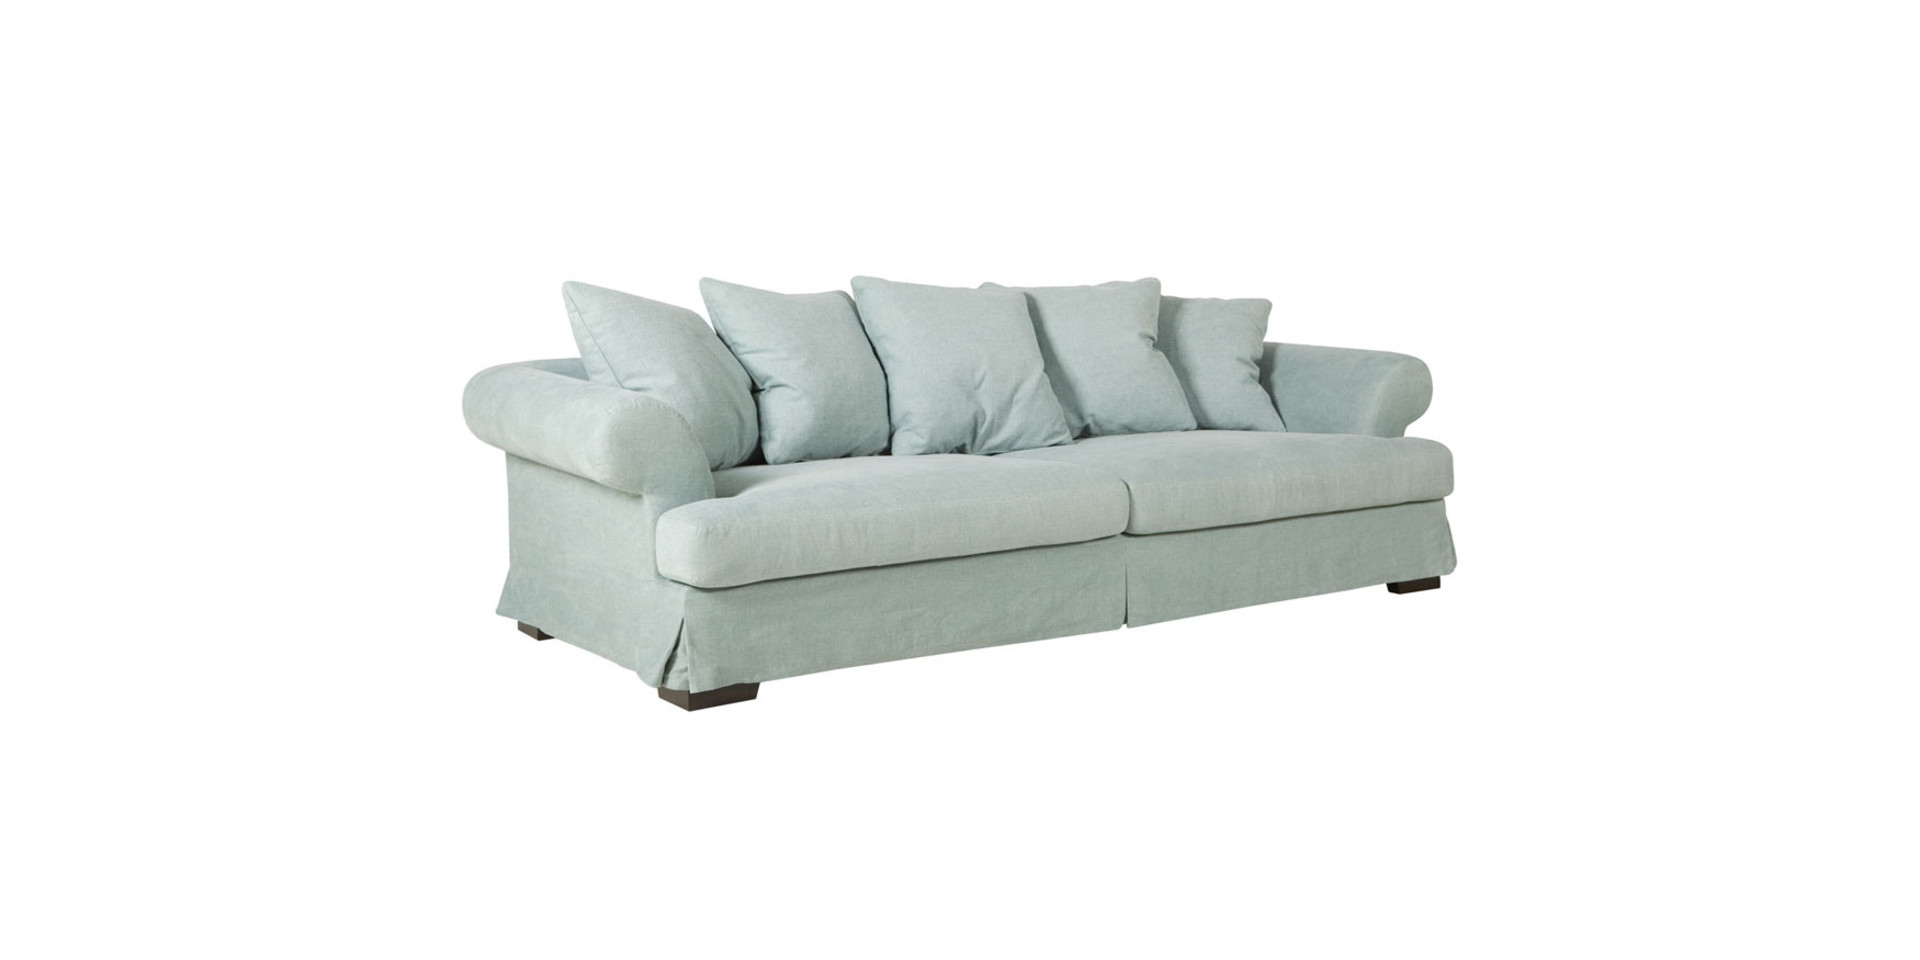 CARLOS_3seater_brest119_mint_2_0